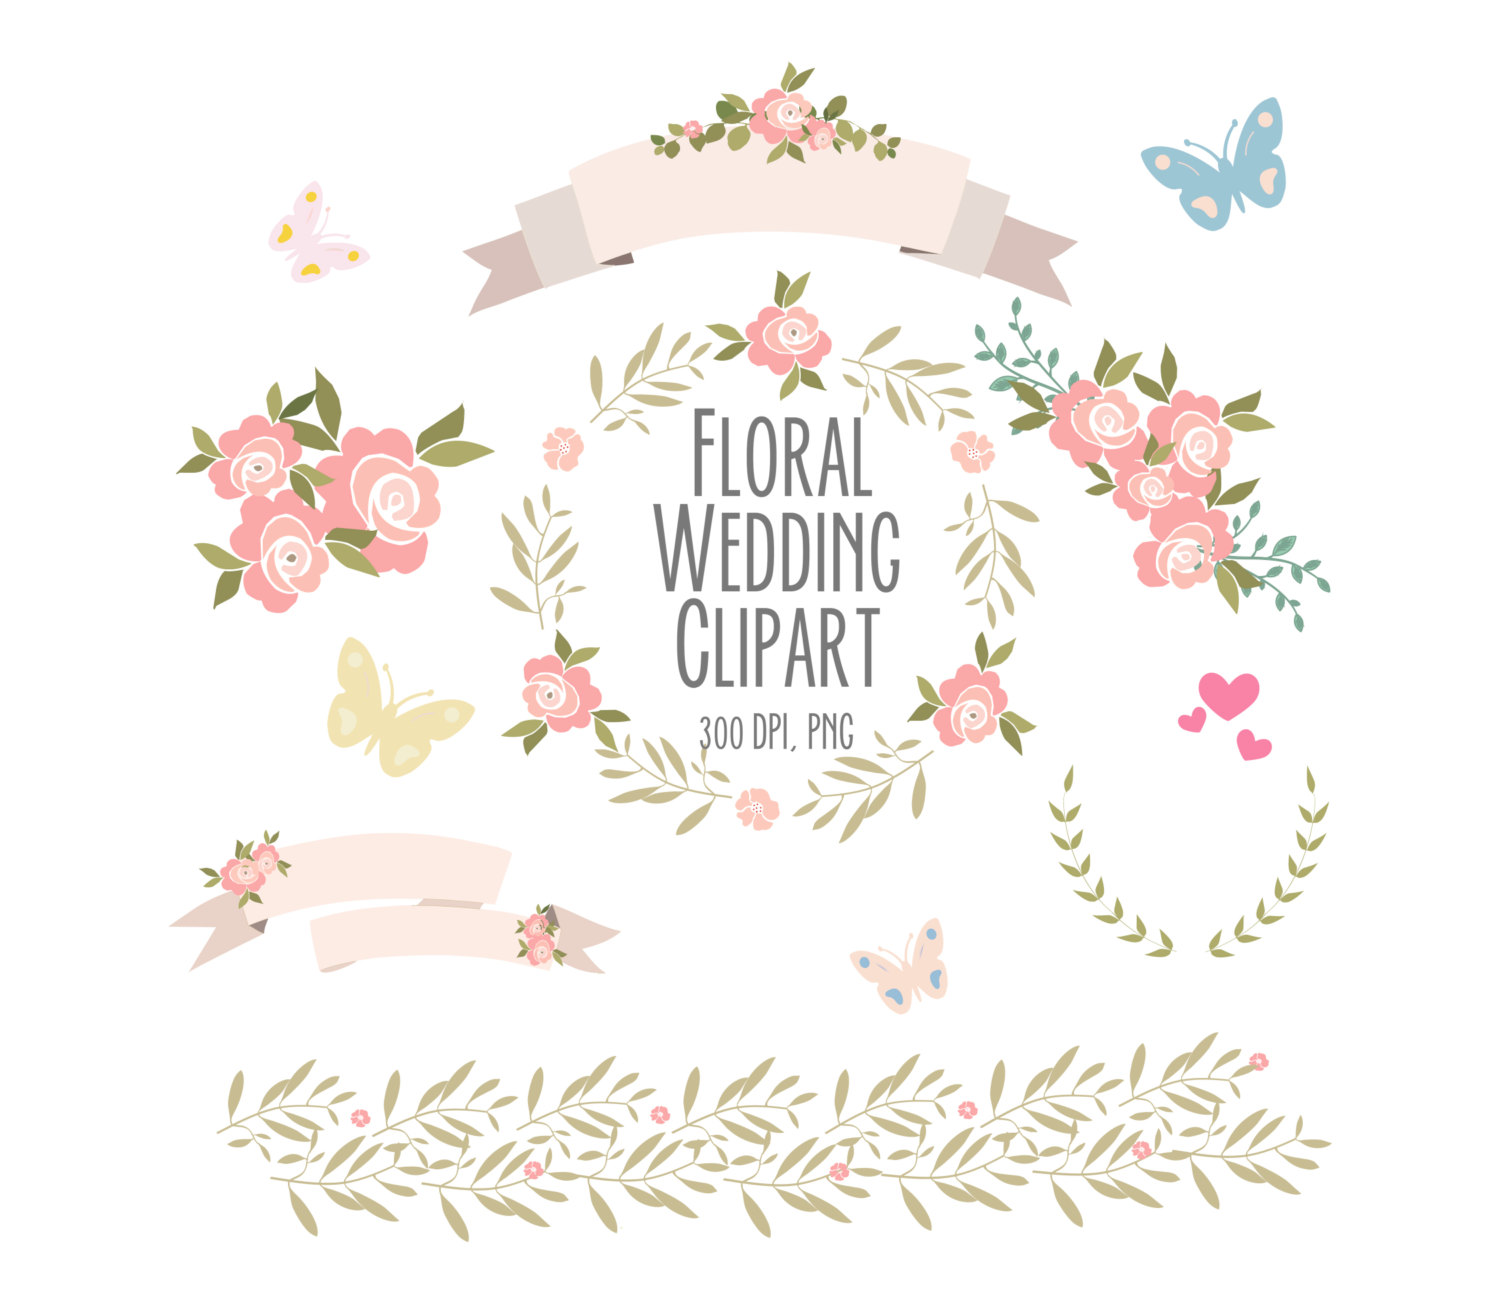 Floral roses clipart set 3 wedding clipart by Thelittleclouddd.